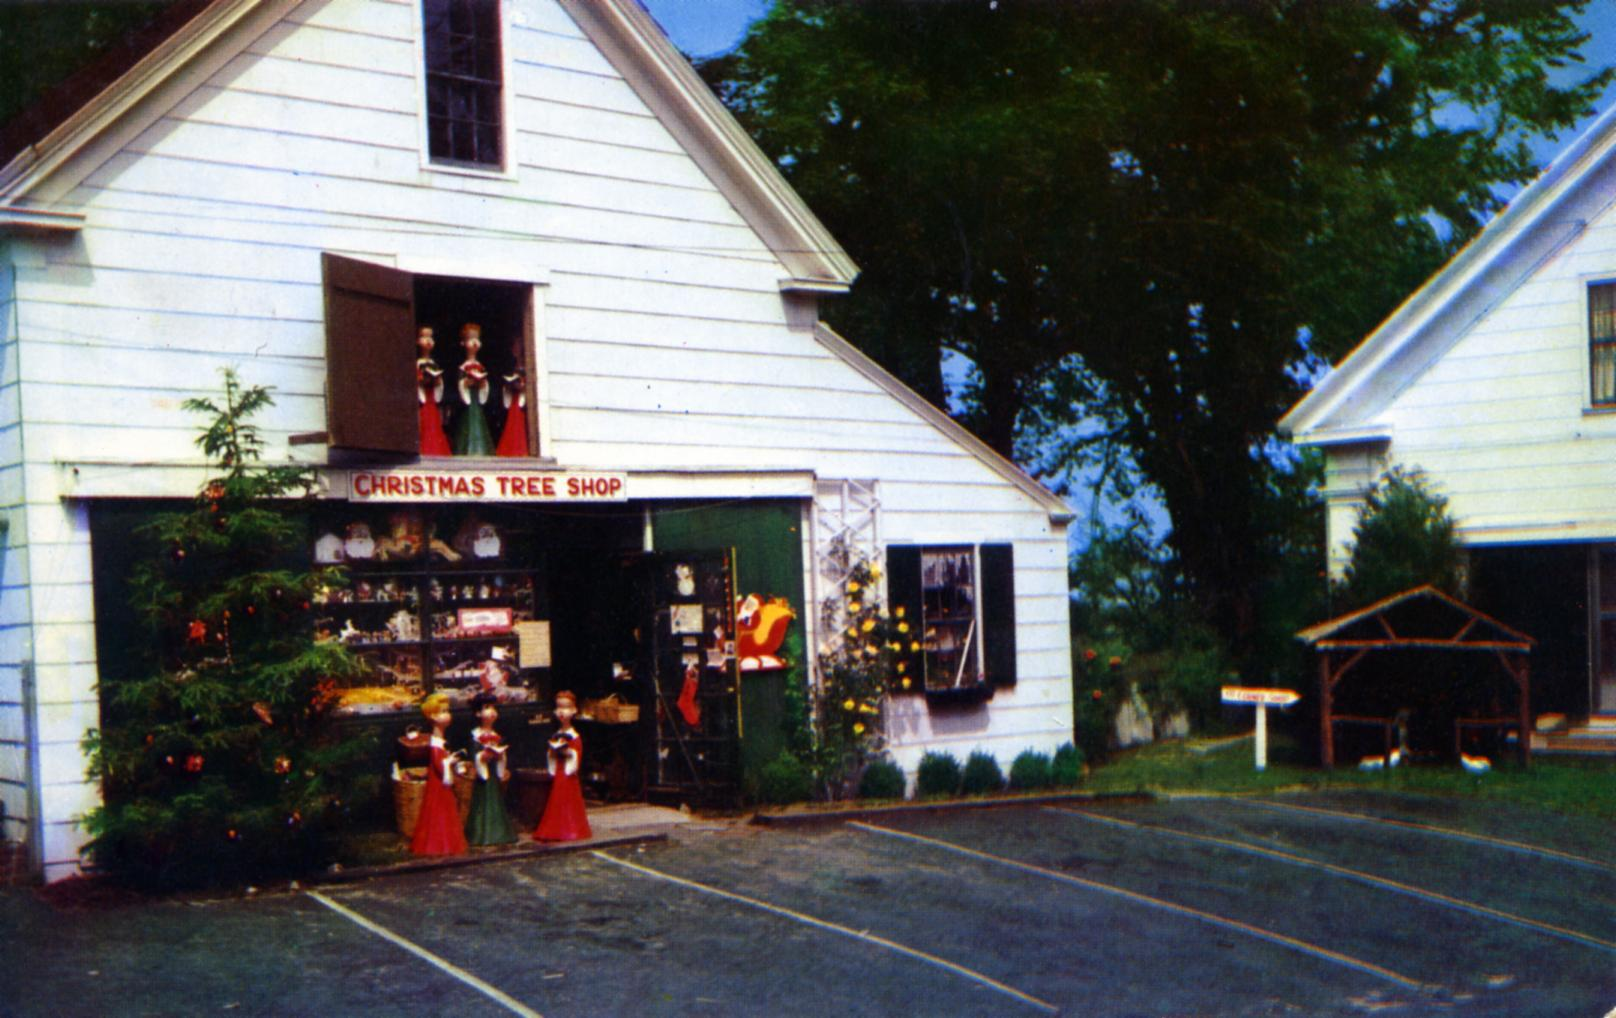 Christmas Tree Gift Shops Yarmouth Port Cape Cod MA on Route 6A, corner at Willow Street Cape Cod's most distinctive and charming gift shops postmarked 1958